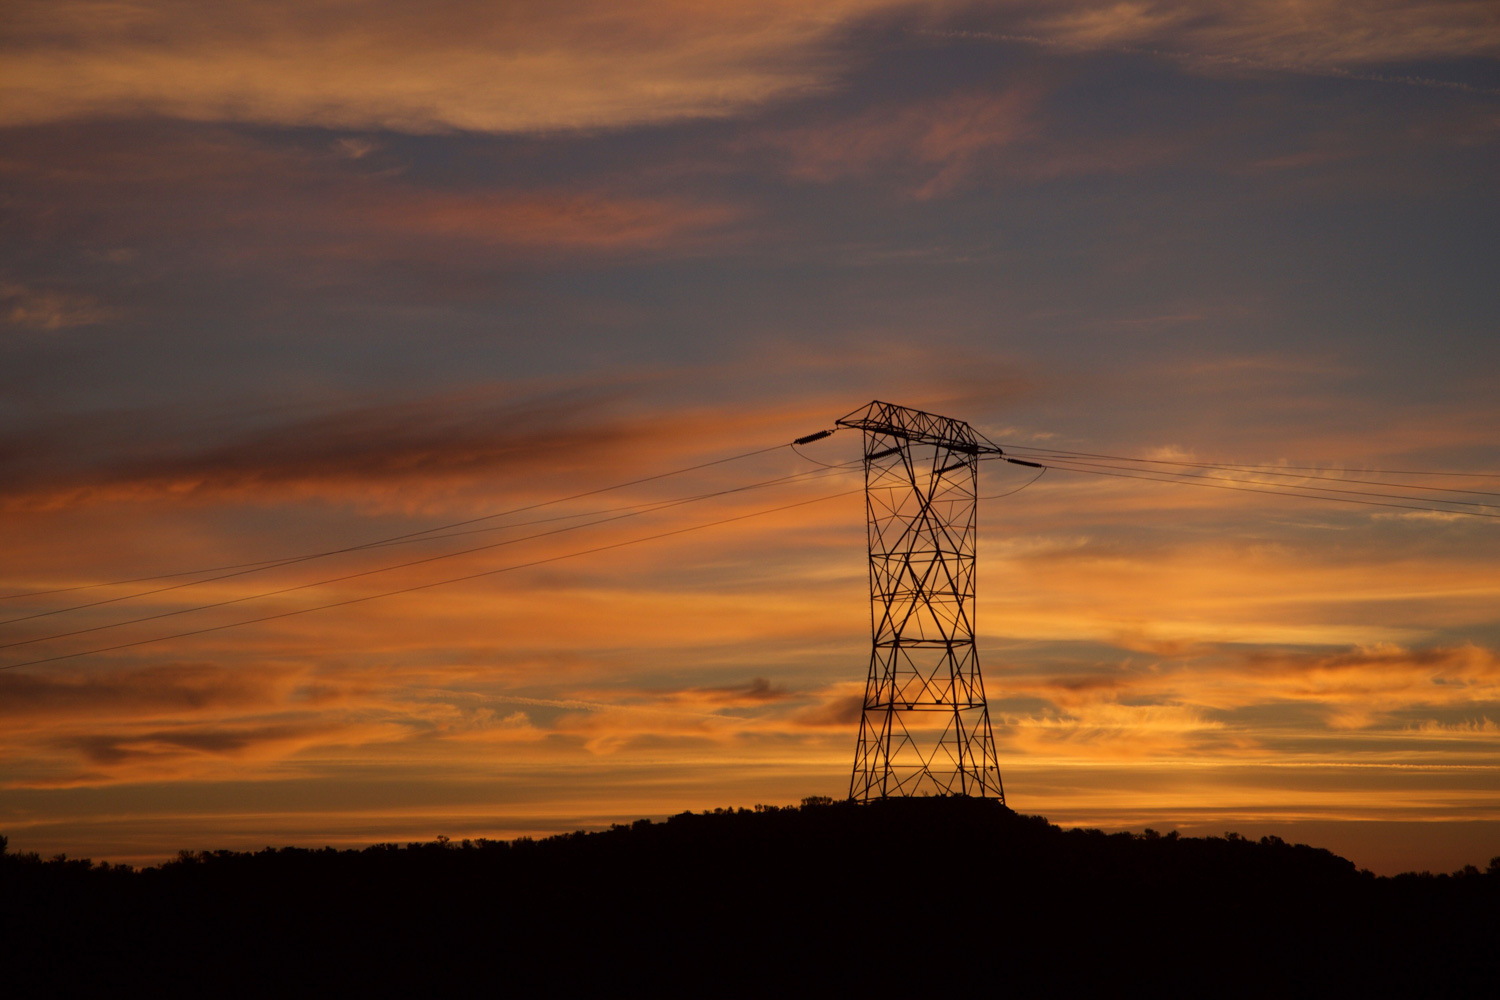 Eastern Washington transmission lines